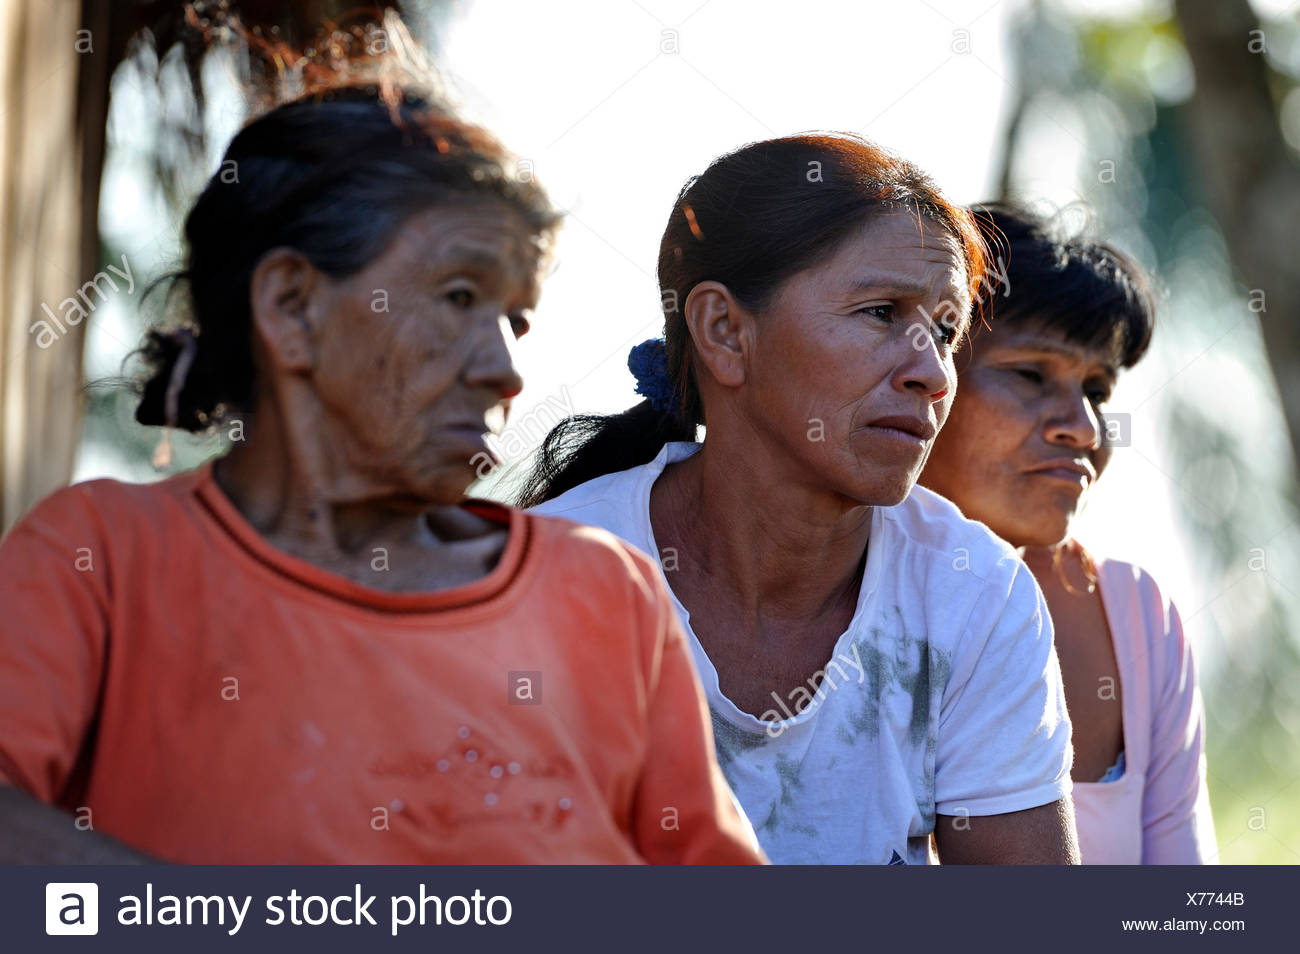 Three women with worried facial expressions, in a community of Guarani Indians, Jaguary, Caaguazú Department, Paraguay - Stock Image